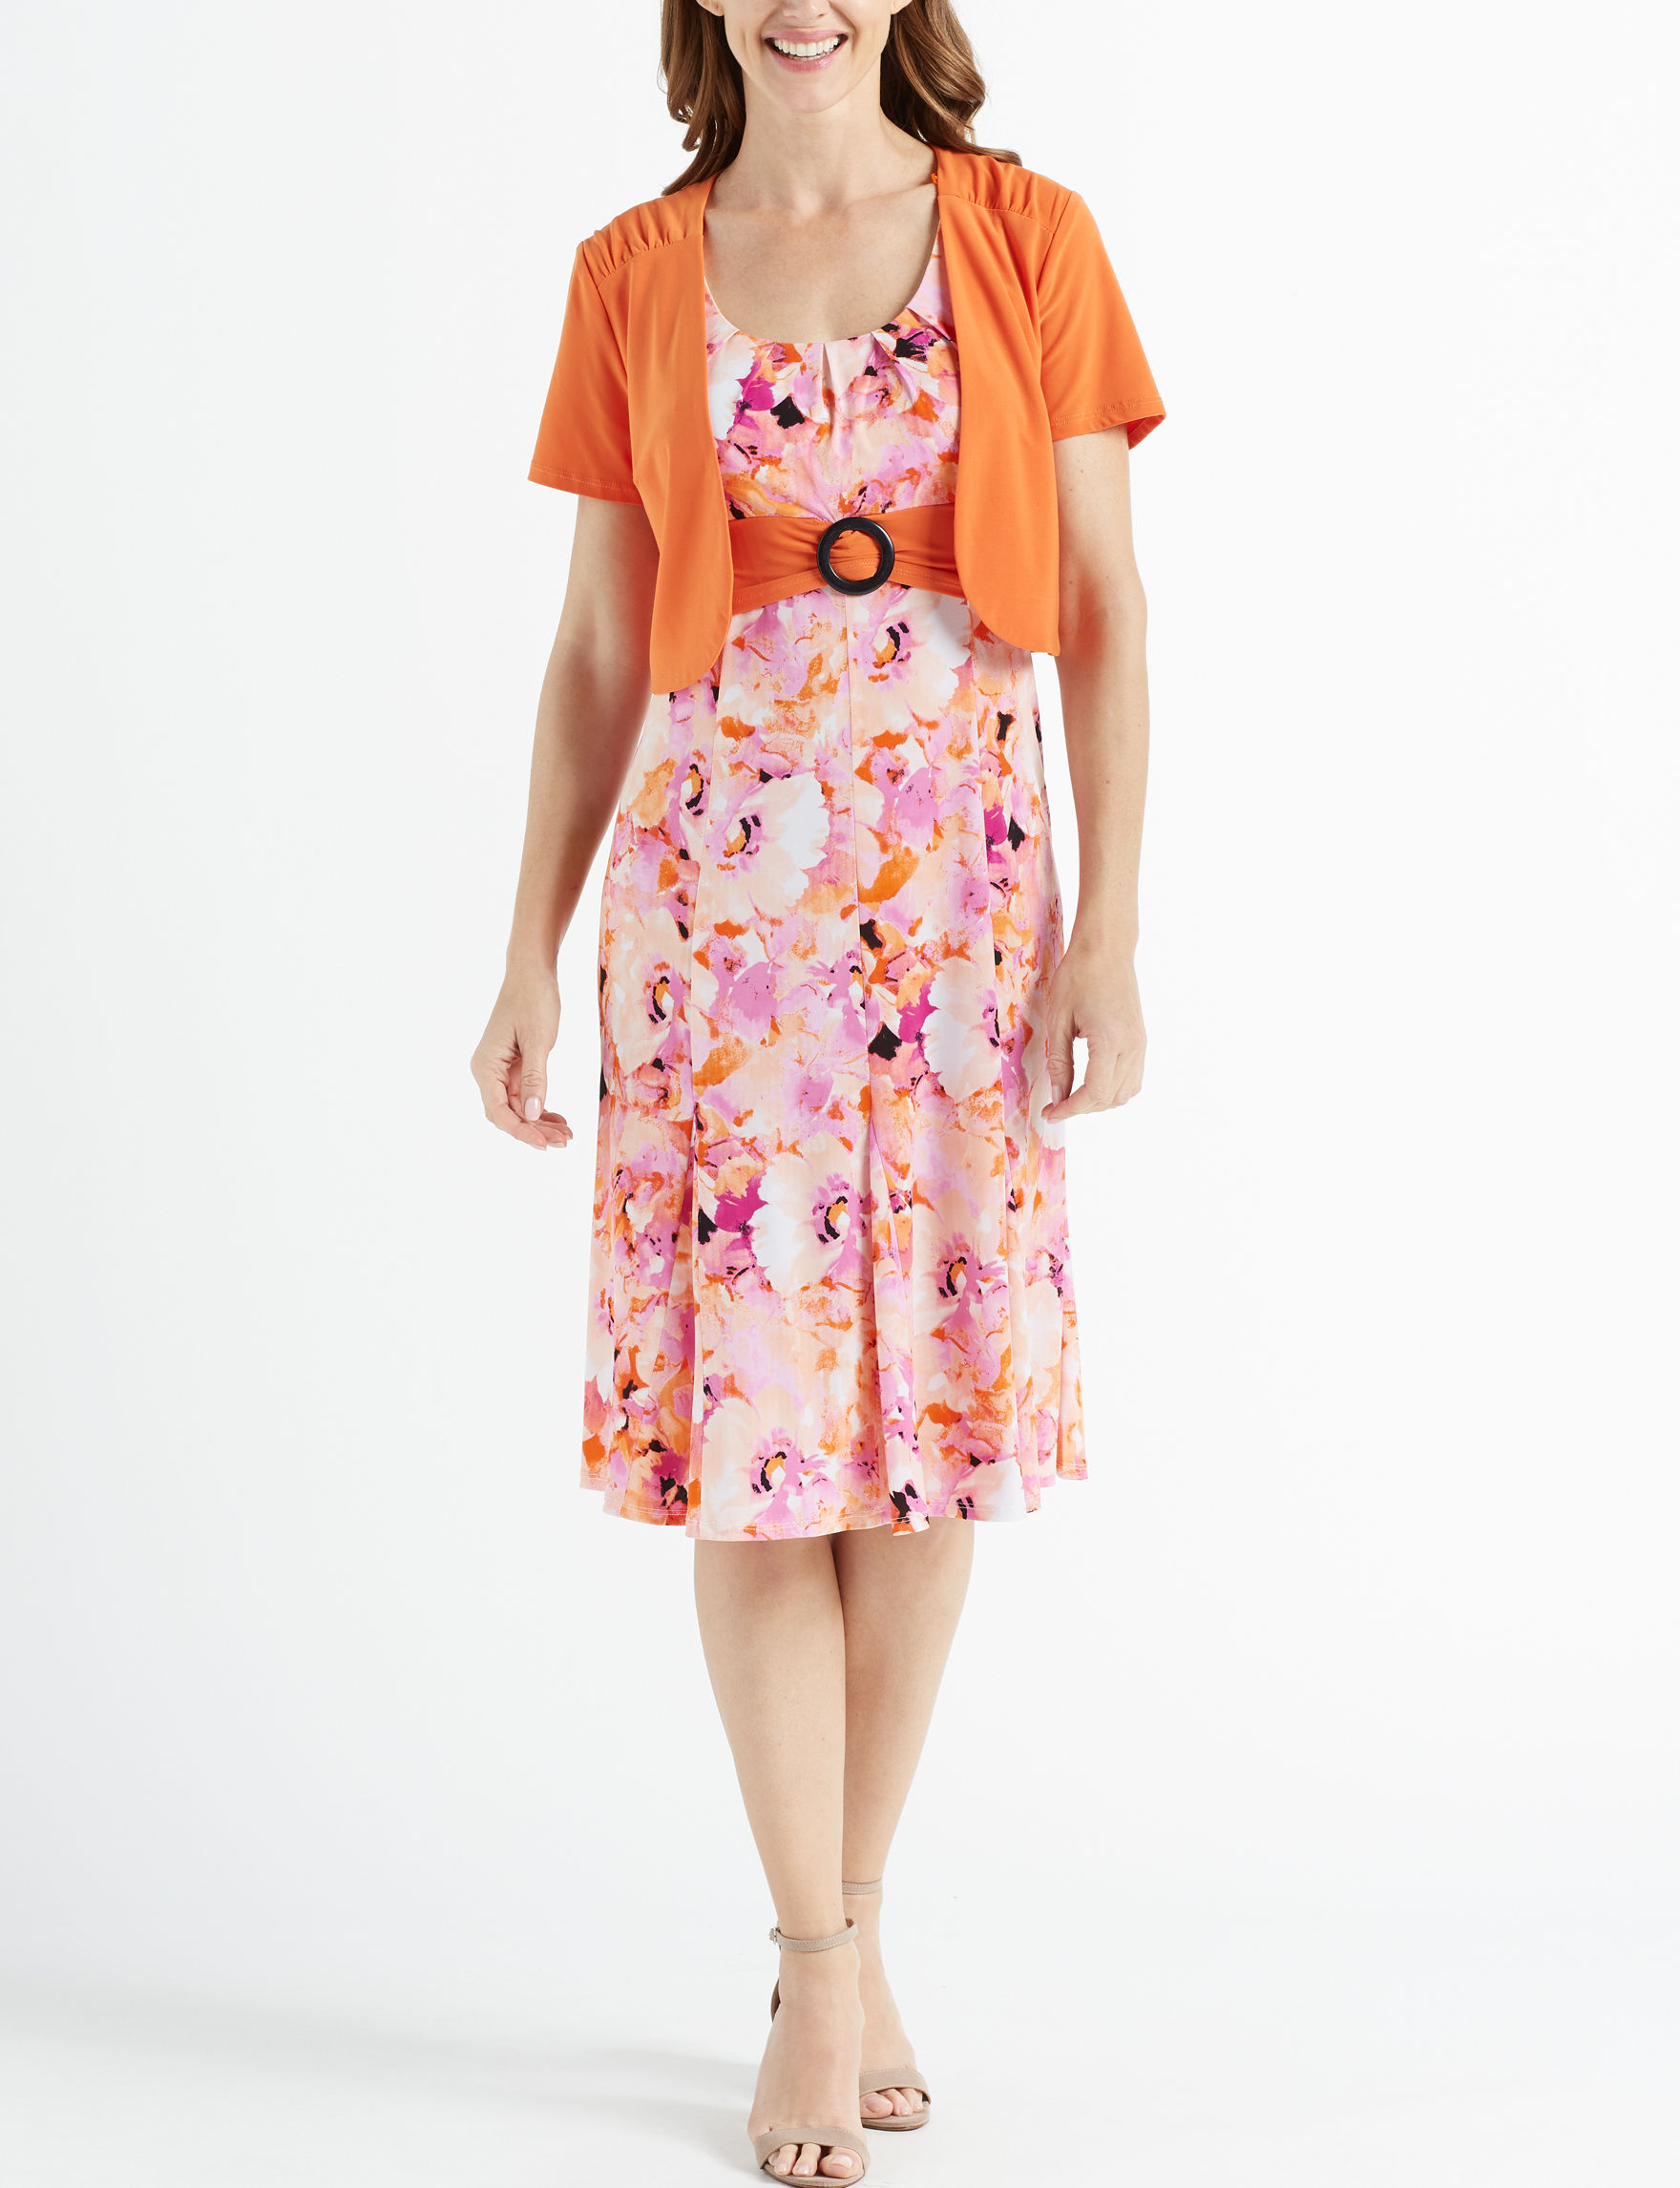 Perceptions Coral Multi Everyday & Casual A-line Dresses Jacket Dresses